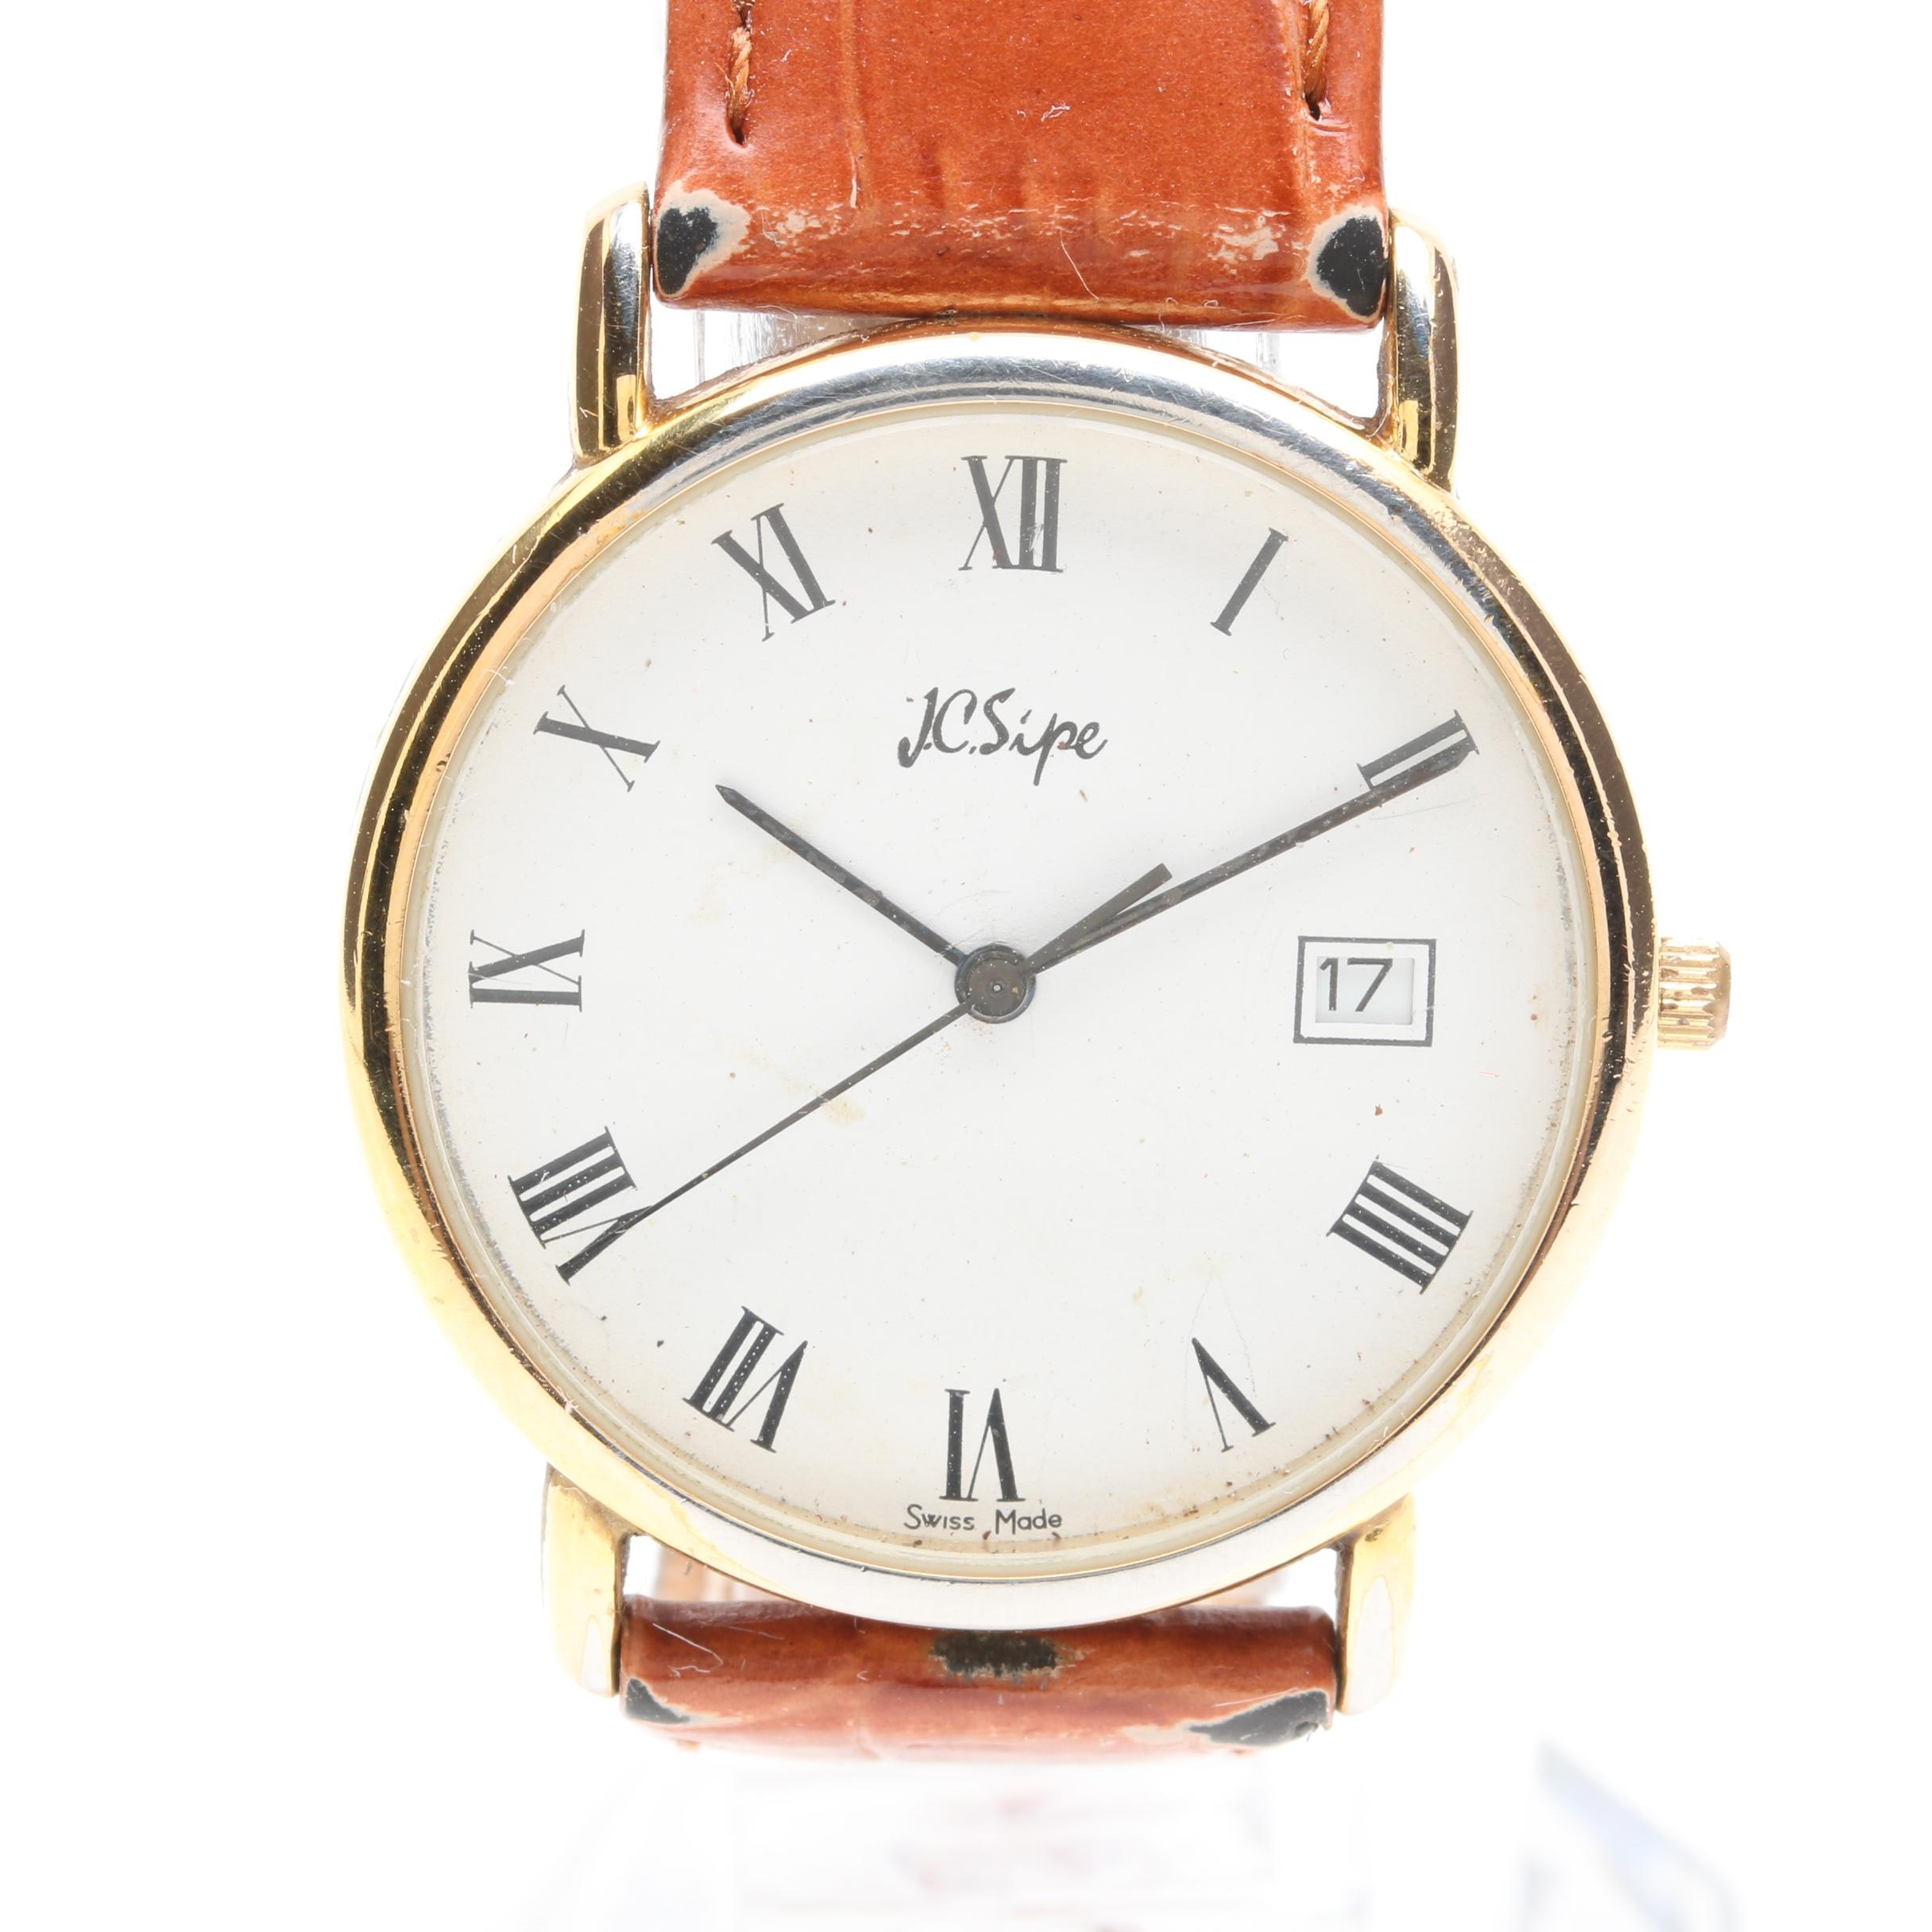 JC Sipe Stainless Steel and Leather Strap Wristwatch